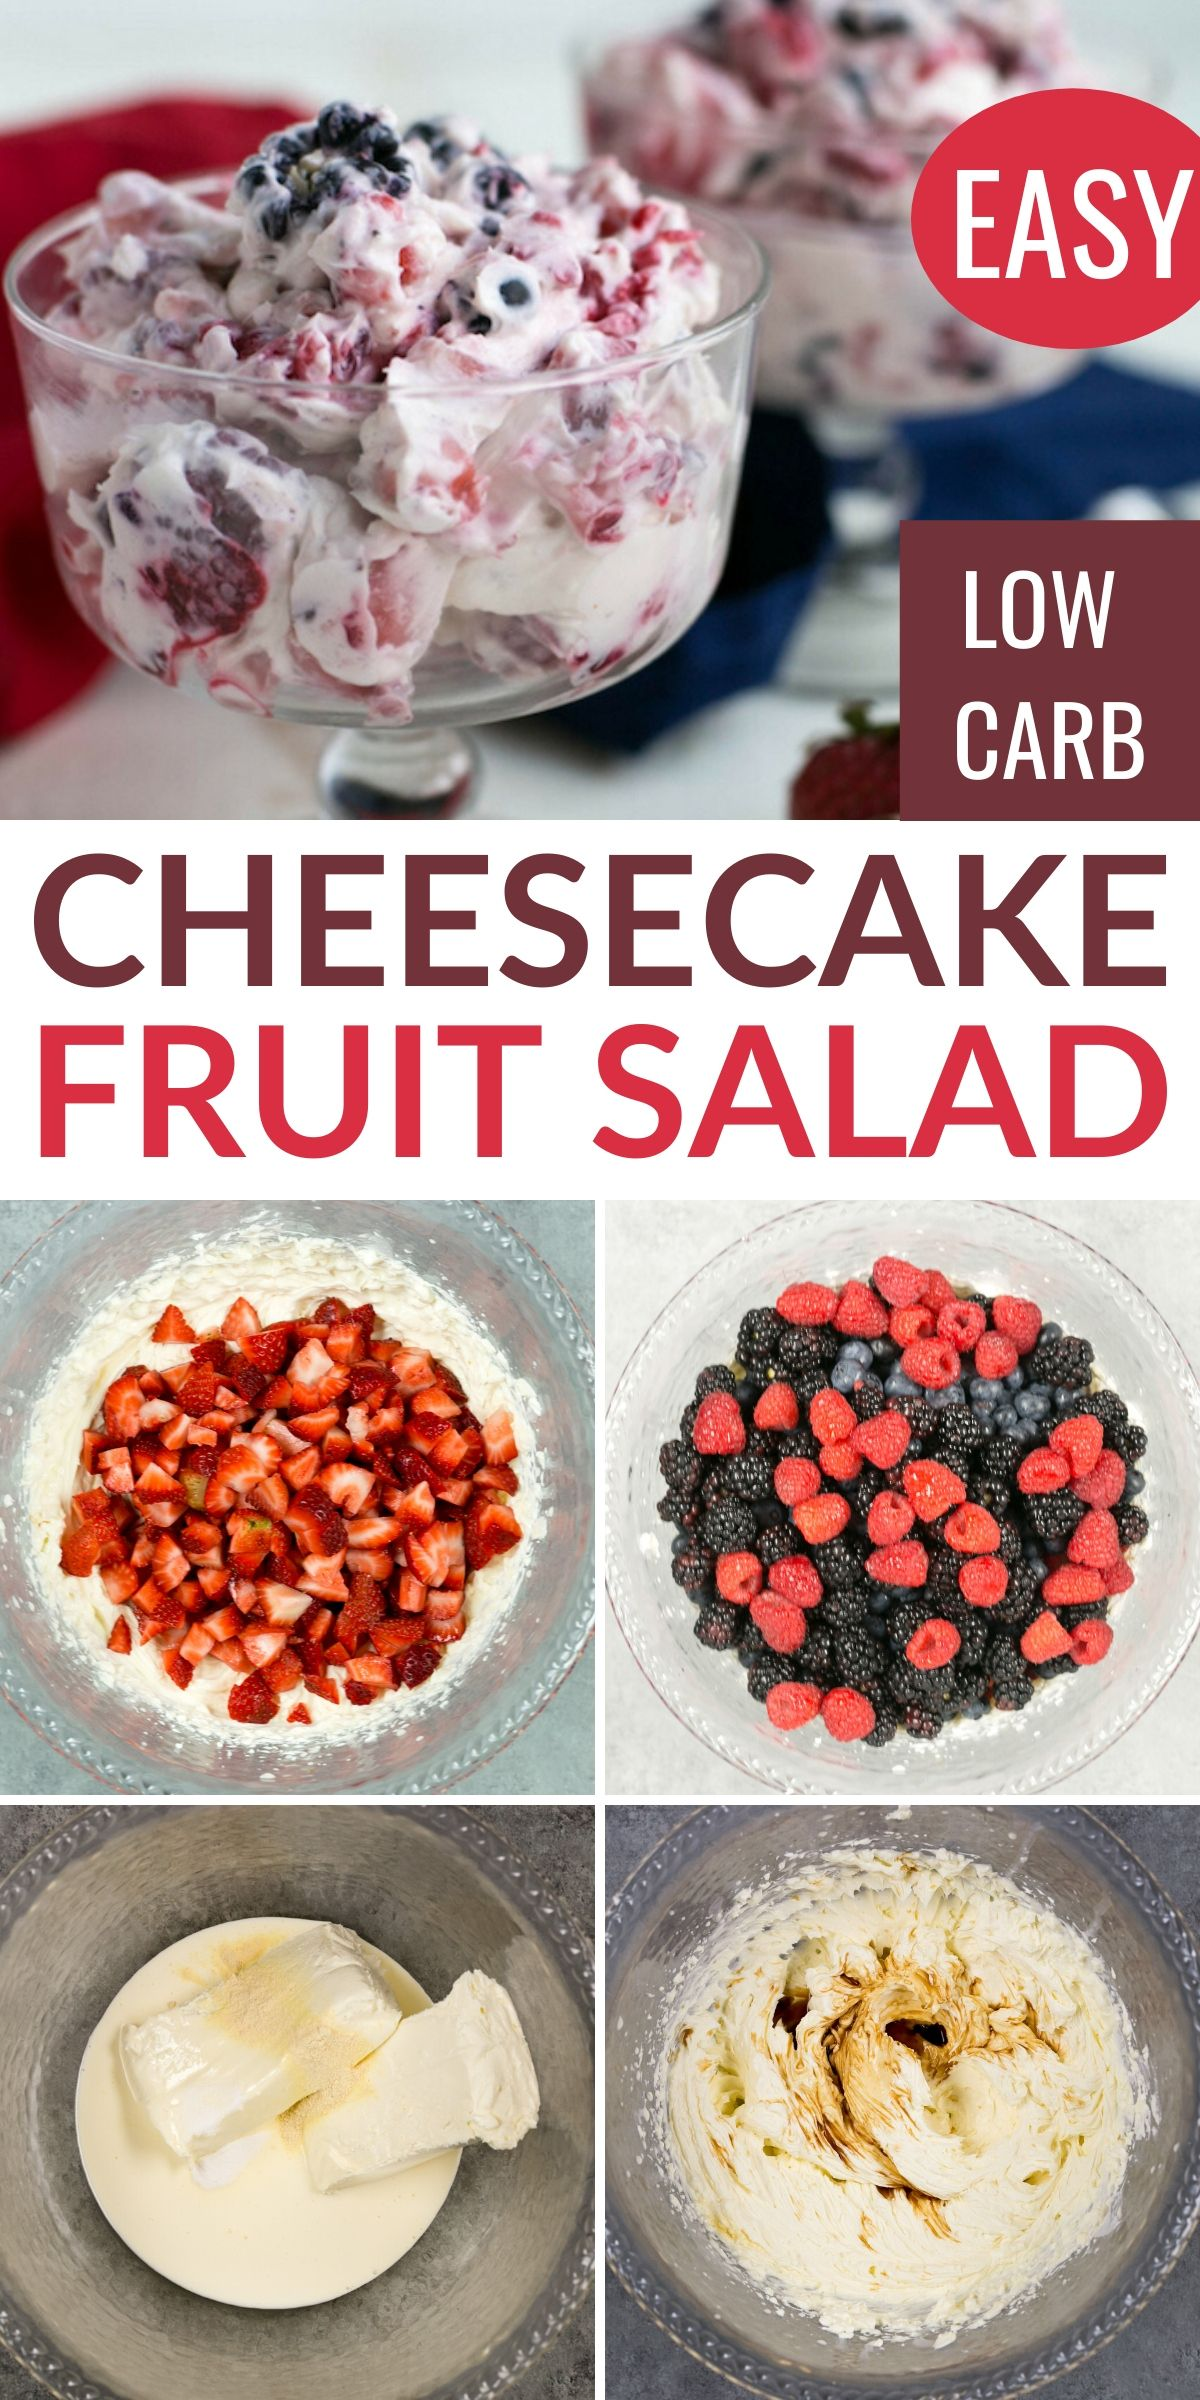 Low Carb Cheesecake Fruit Salad